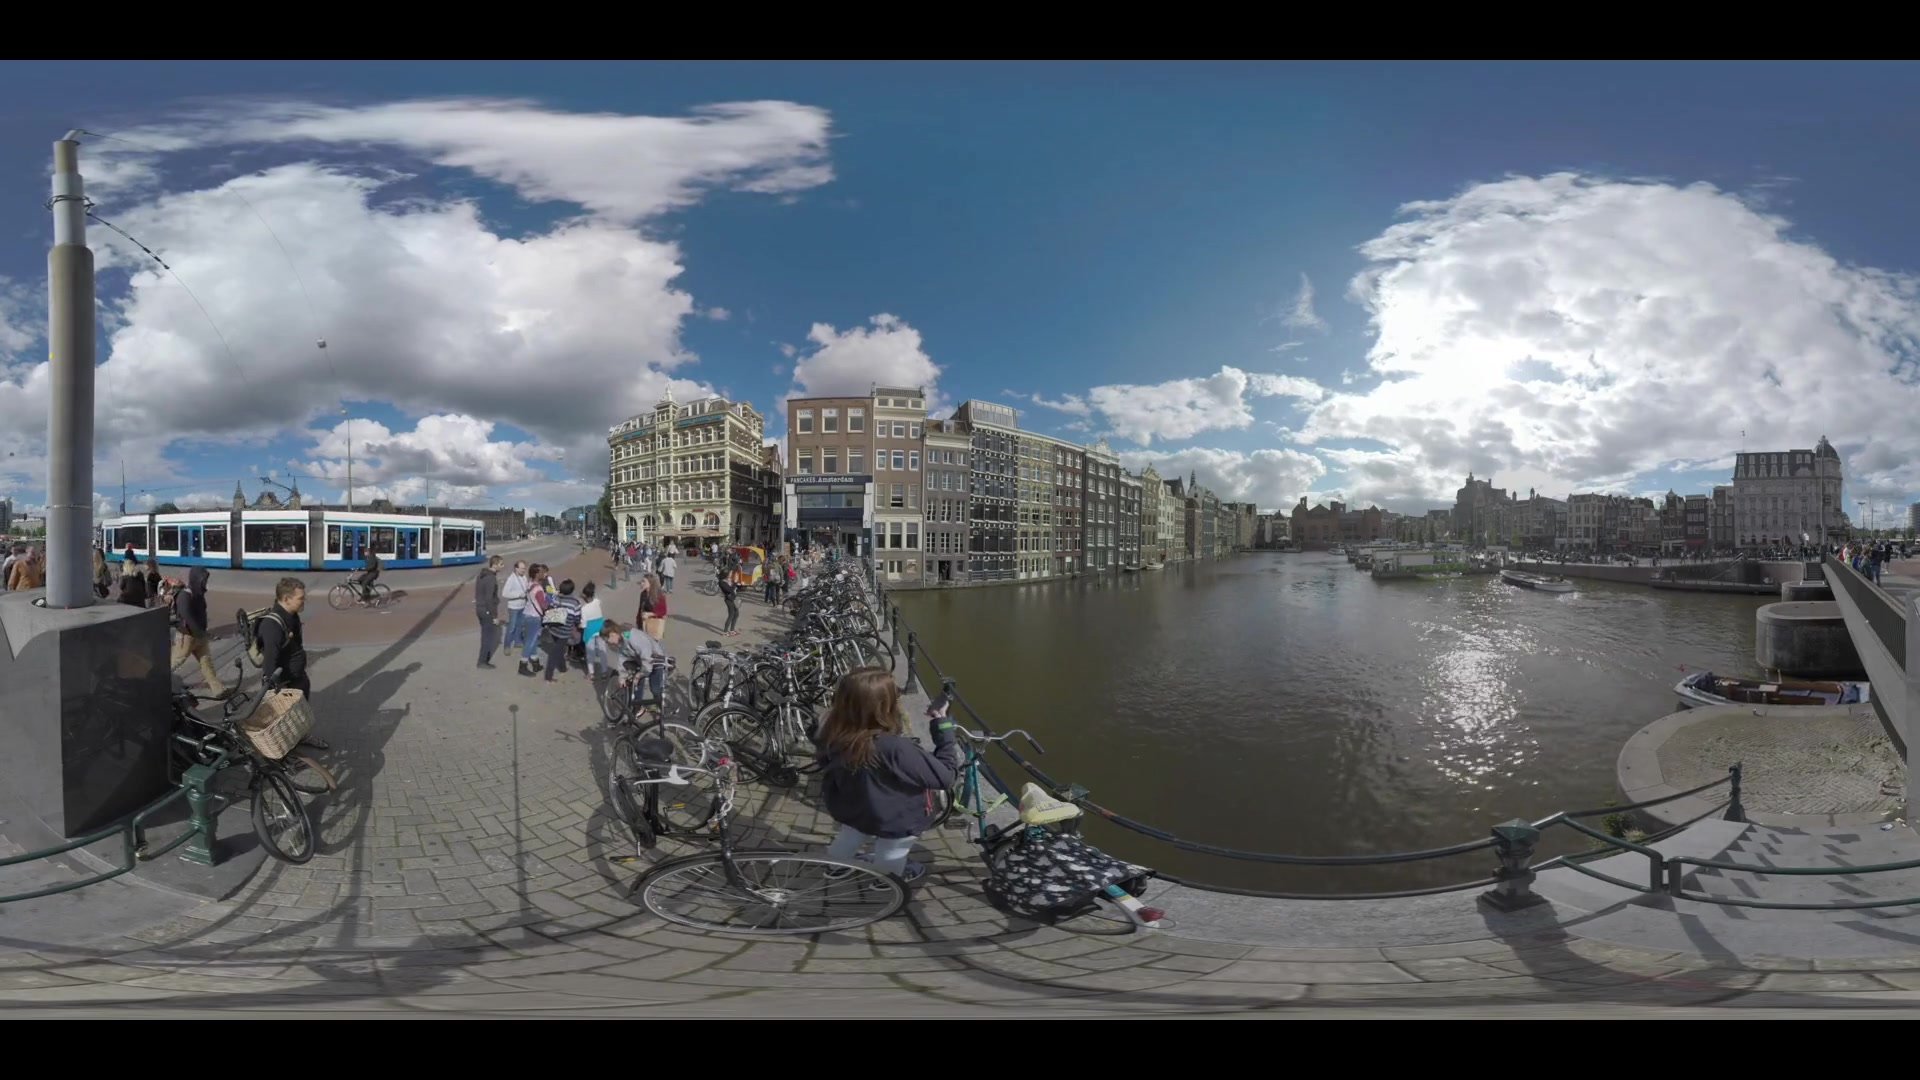 AMSTERDAM, NETHERLANDS - AUGUST 09, 2016: 360 VR video. City scene with Dutch houses, canal with boats starting their tour and Rijksmuseum. People walking on sidewalks, traffic on the motorway